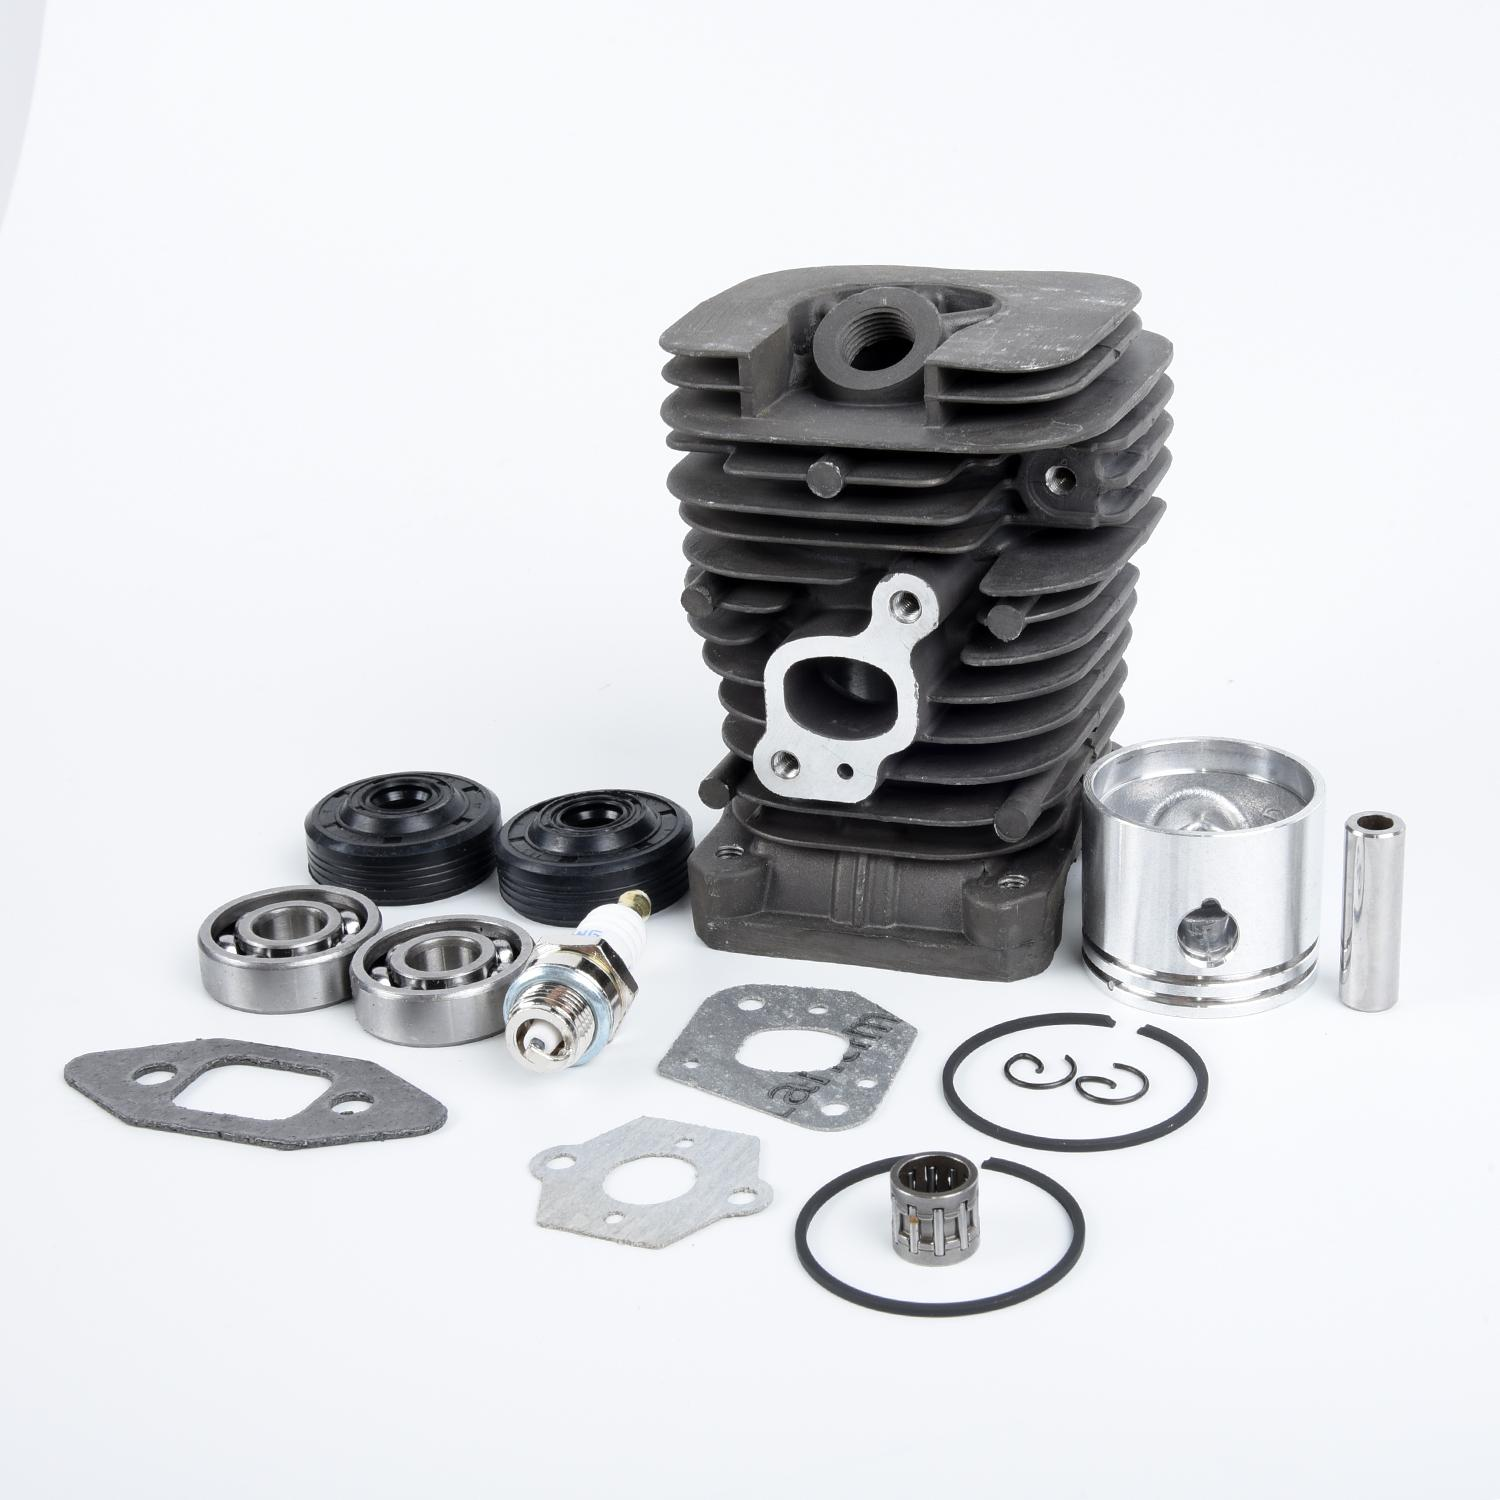 Chainsaw Cylinder Piston Kit For Jonsered CS2137 CS2138 2035 41.1mm Accessories Replacement High Quality